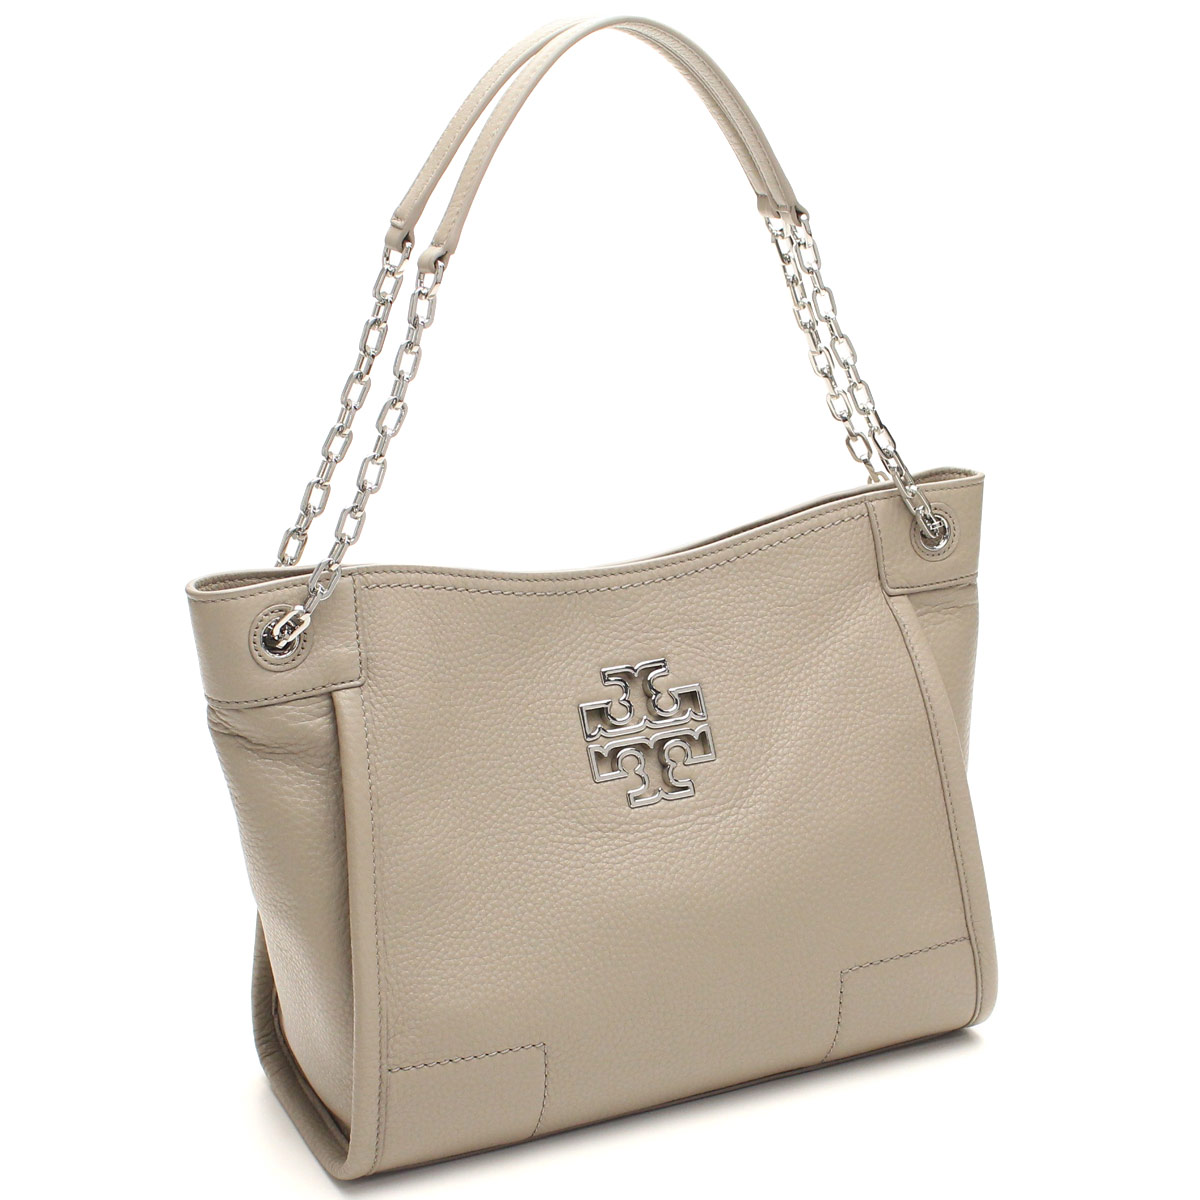 Hit The Total Brand Whole Tory Burch Tote Bag 41159877 040 French Gray Taxfree Send By Ems Authentic A New Item Rakuten